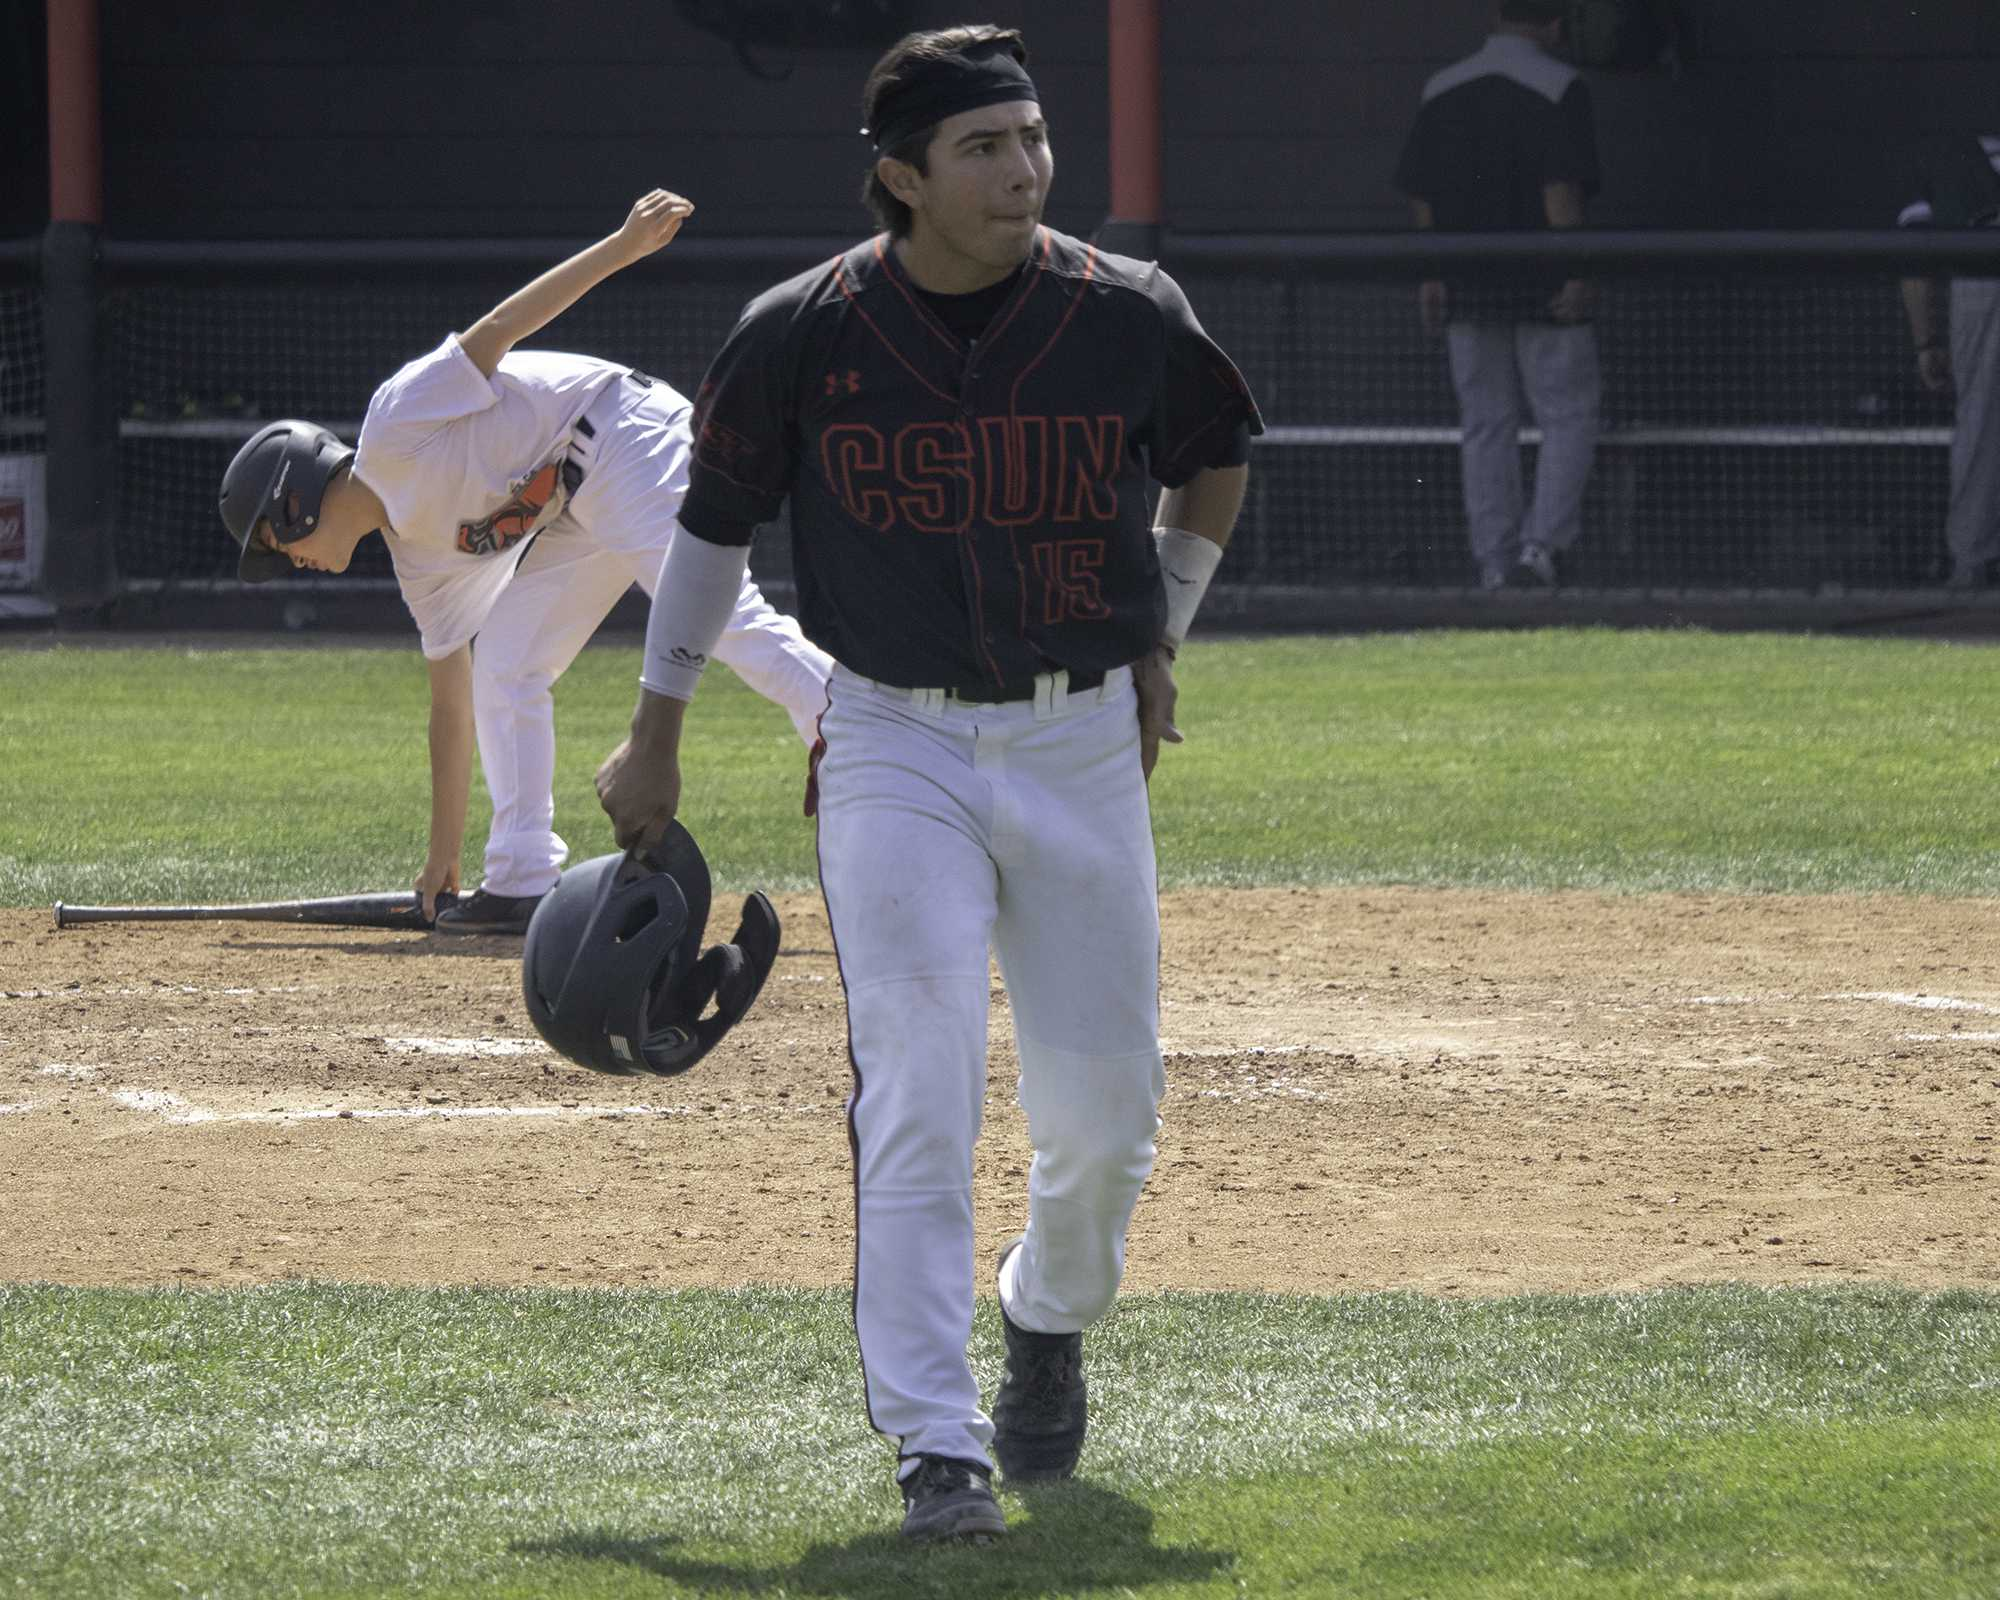 Junior Jose Ruiz Jr. walks back to the dugout during the Matadors' 10-2 victory over Hawaii on Saturday, April 27. Ruiz, who attended CSUN his freshman year in 2016, returned in the fall semester for his junior year and has become a mainstay in head coach Greg Moore's lineup. Photo credit: Tyler Wainfeld